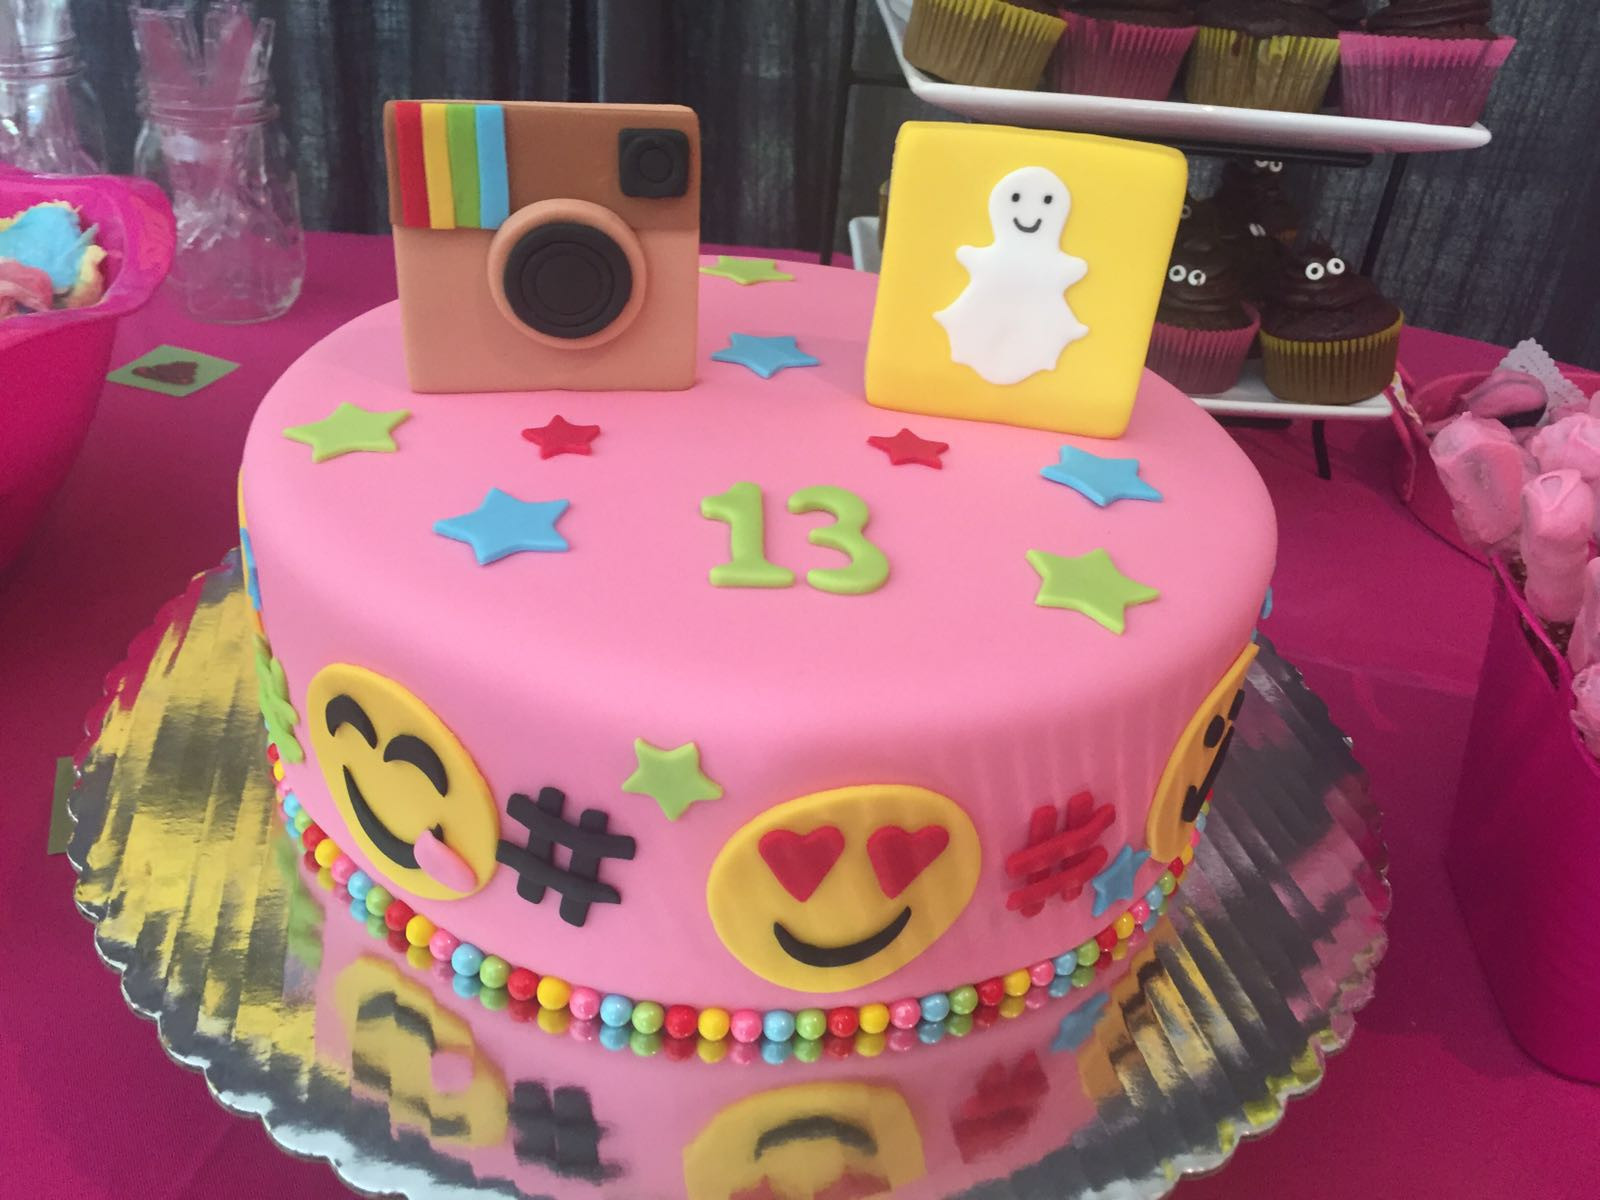 Best ideas about 13 Birthday Cake . Save or Pin My daughter turned 13th and I threw the bestest birthday Now.